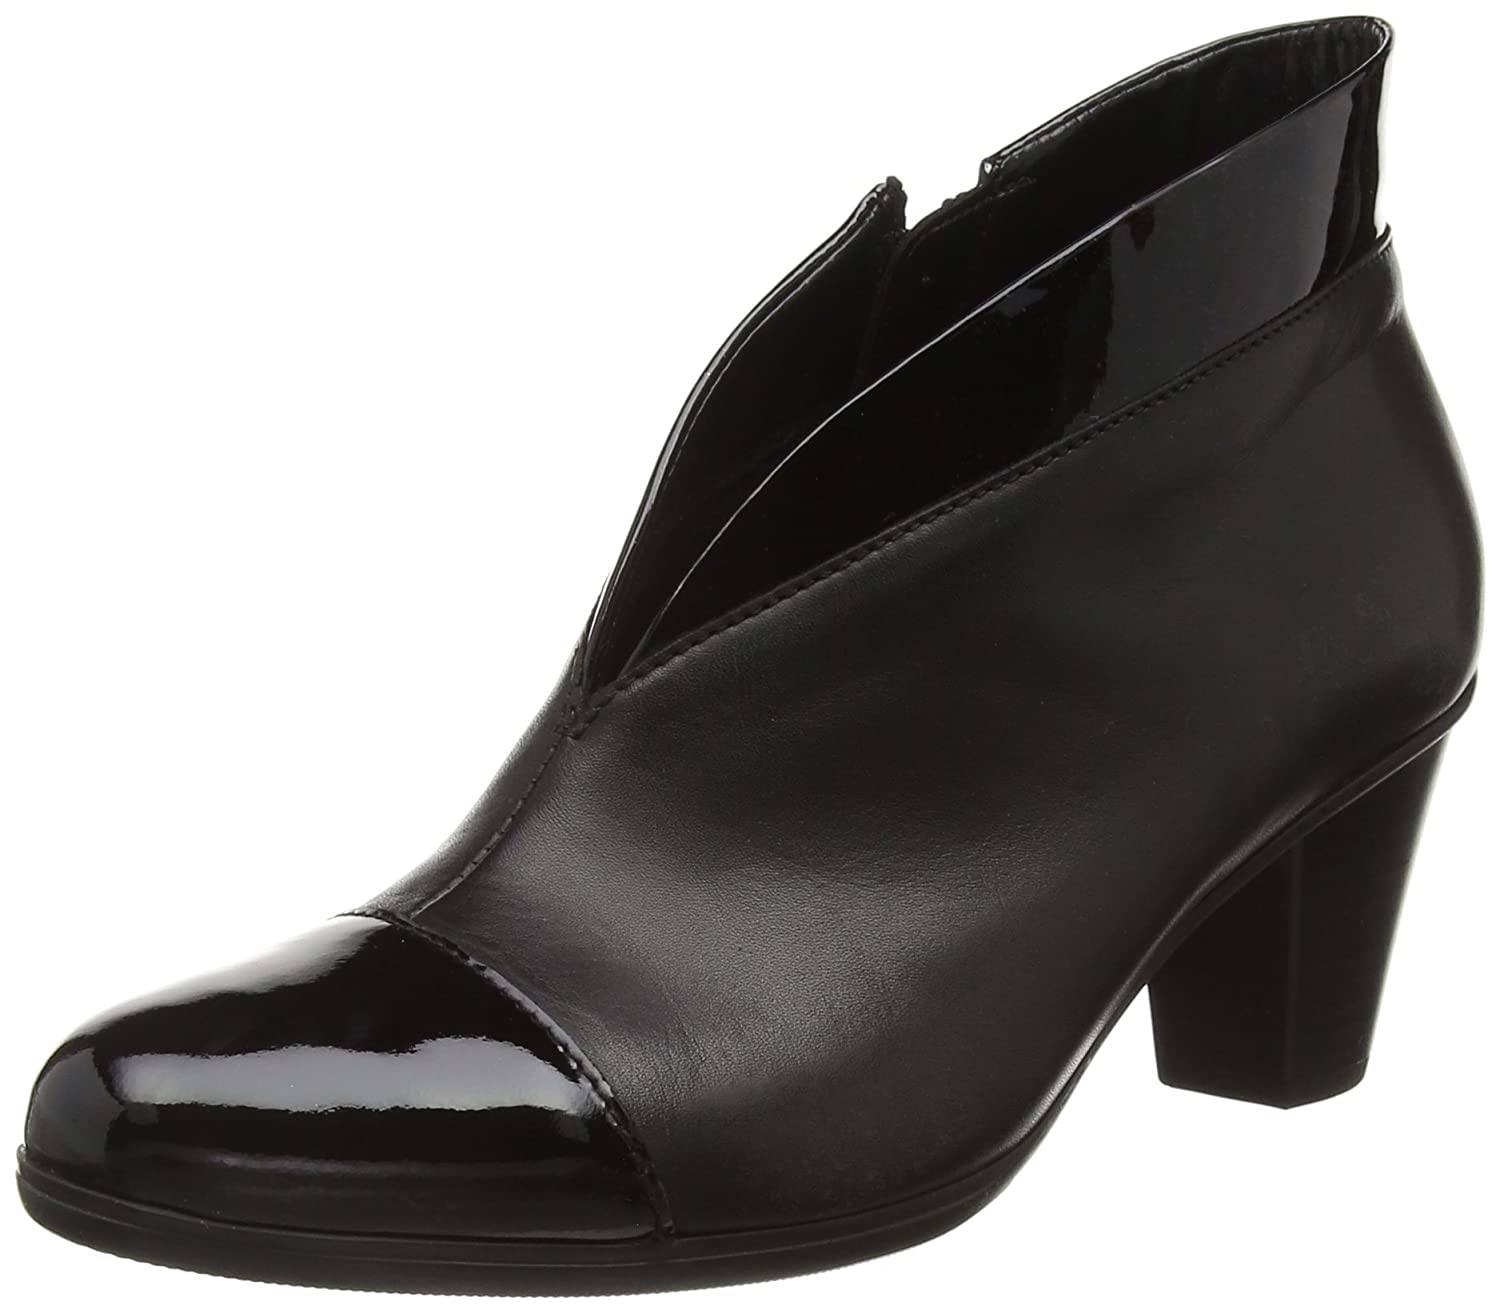 Gabor 11811 Micro) Enfield, Bottes Classiques Noir Femme Noir (Schwarz Micro) 29b0f0e - therethere.space